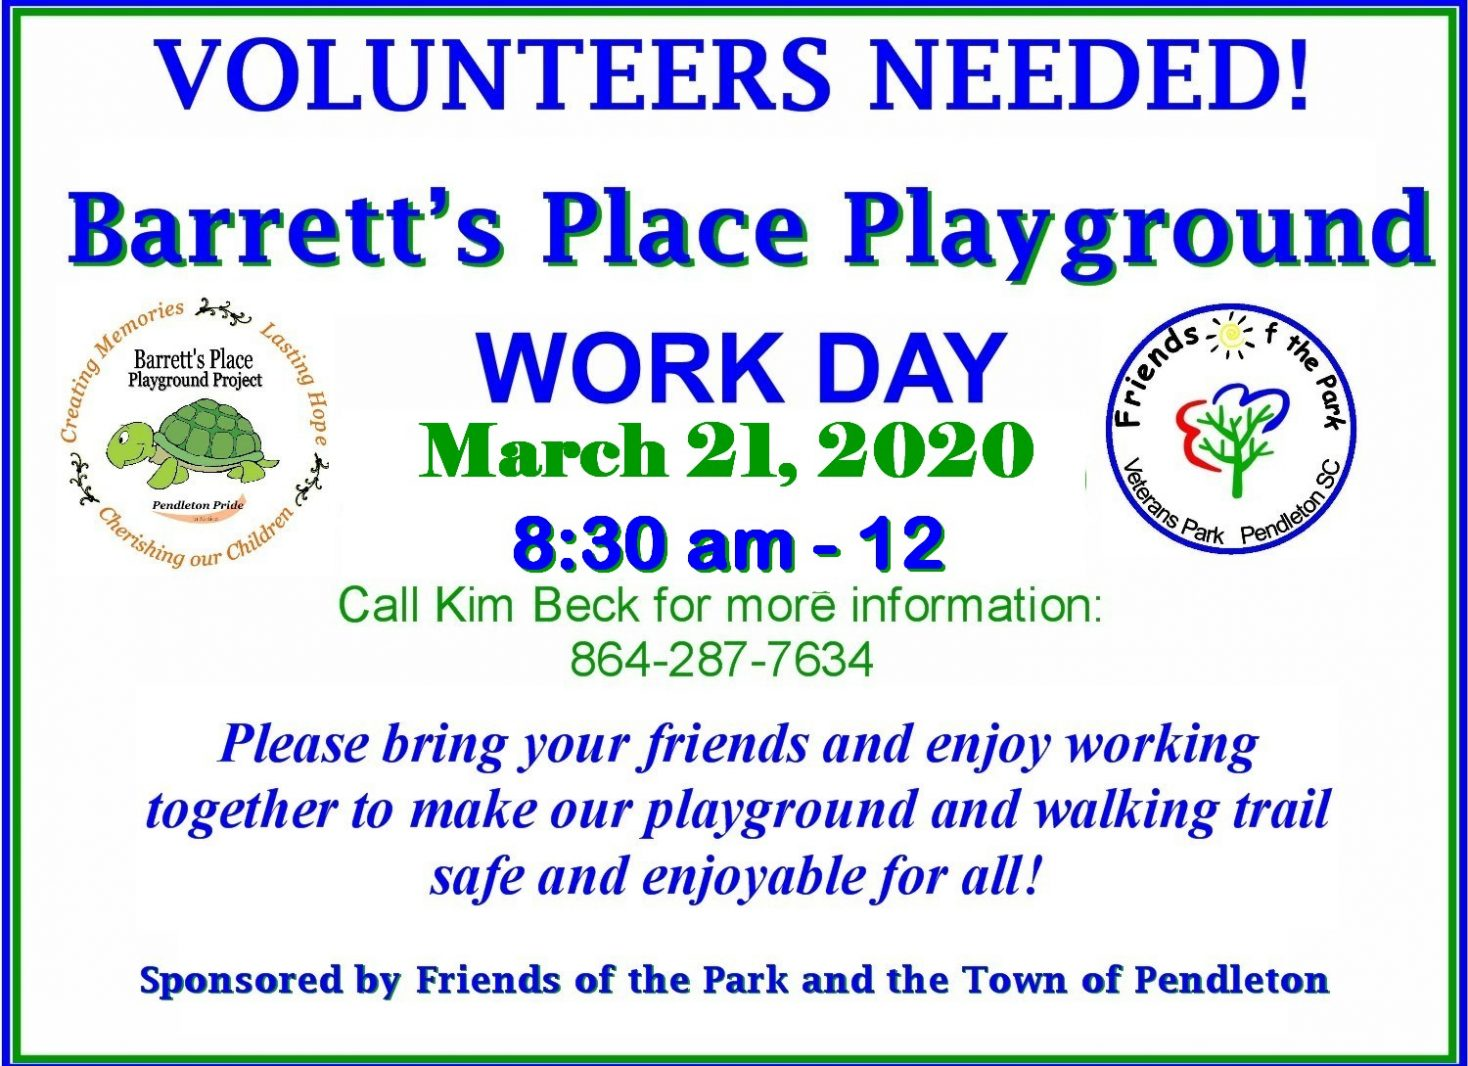 CANCELLED – Volunteers Needed! Barrett's Place Playground Work Day